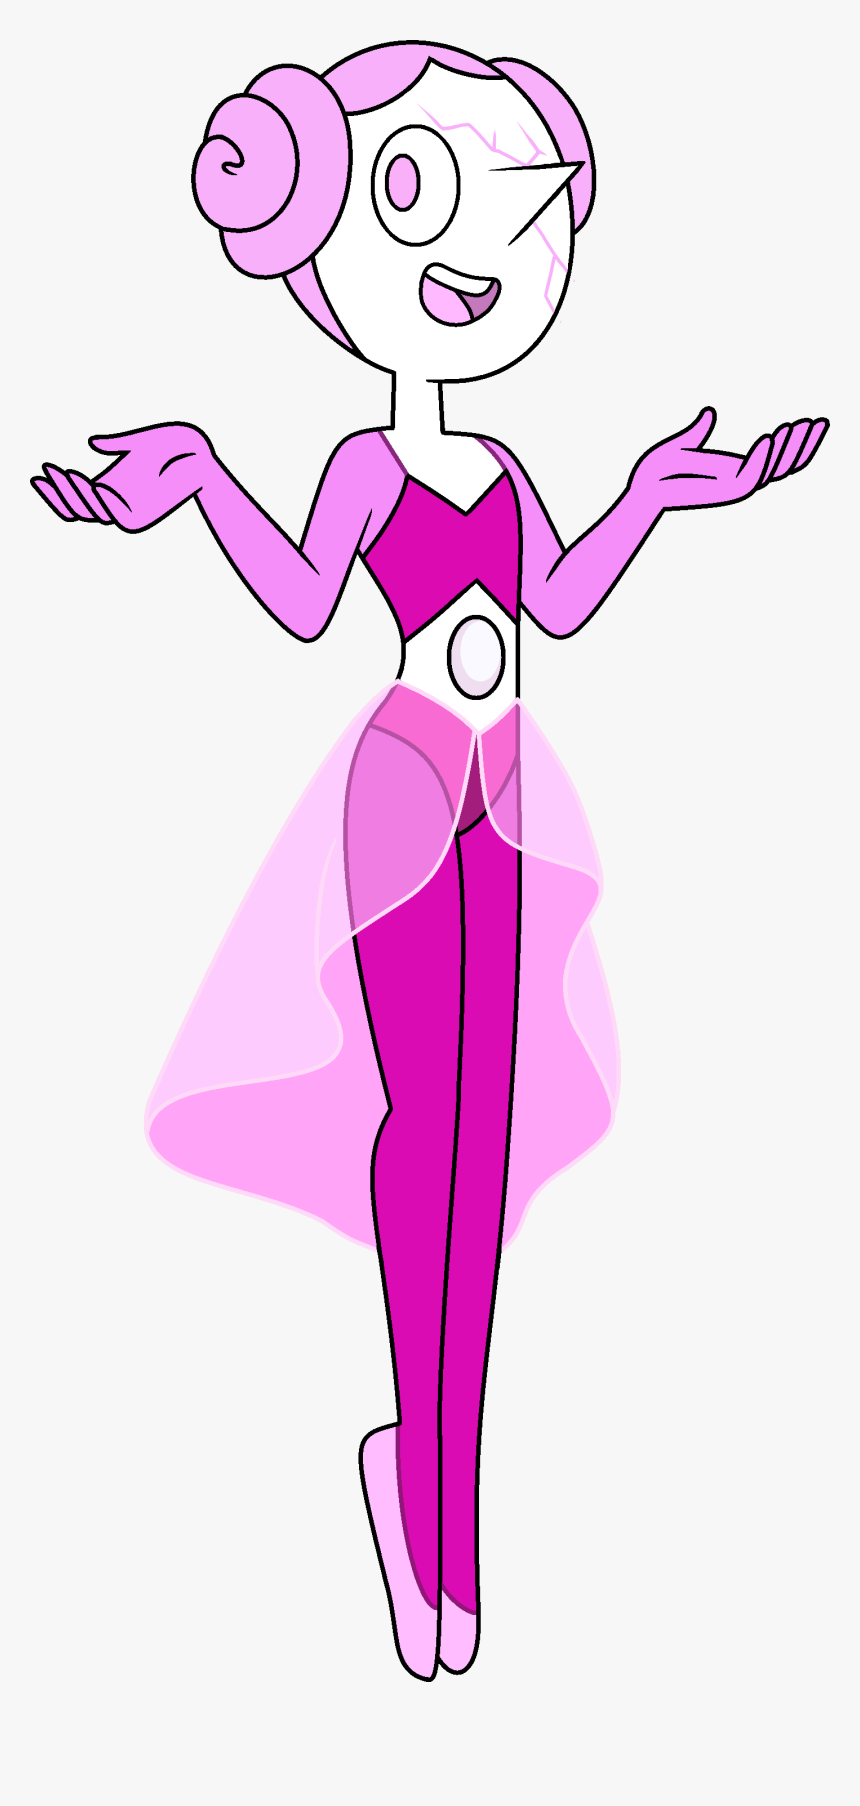 Pink Pearl Png - Pink Pearl Steven Universe, Transparent Png, Free Download